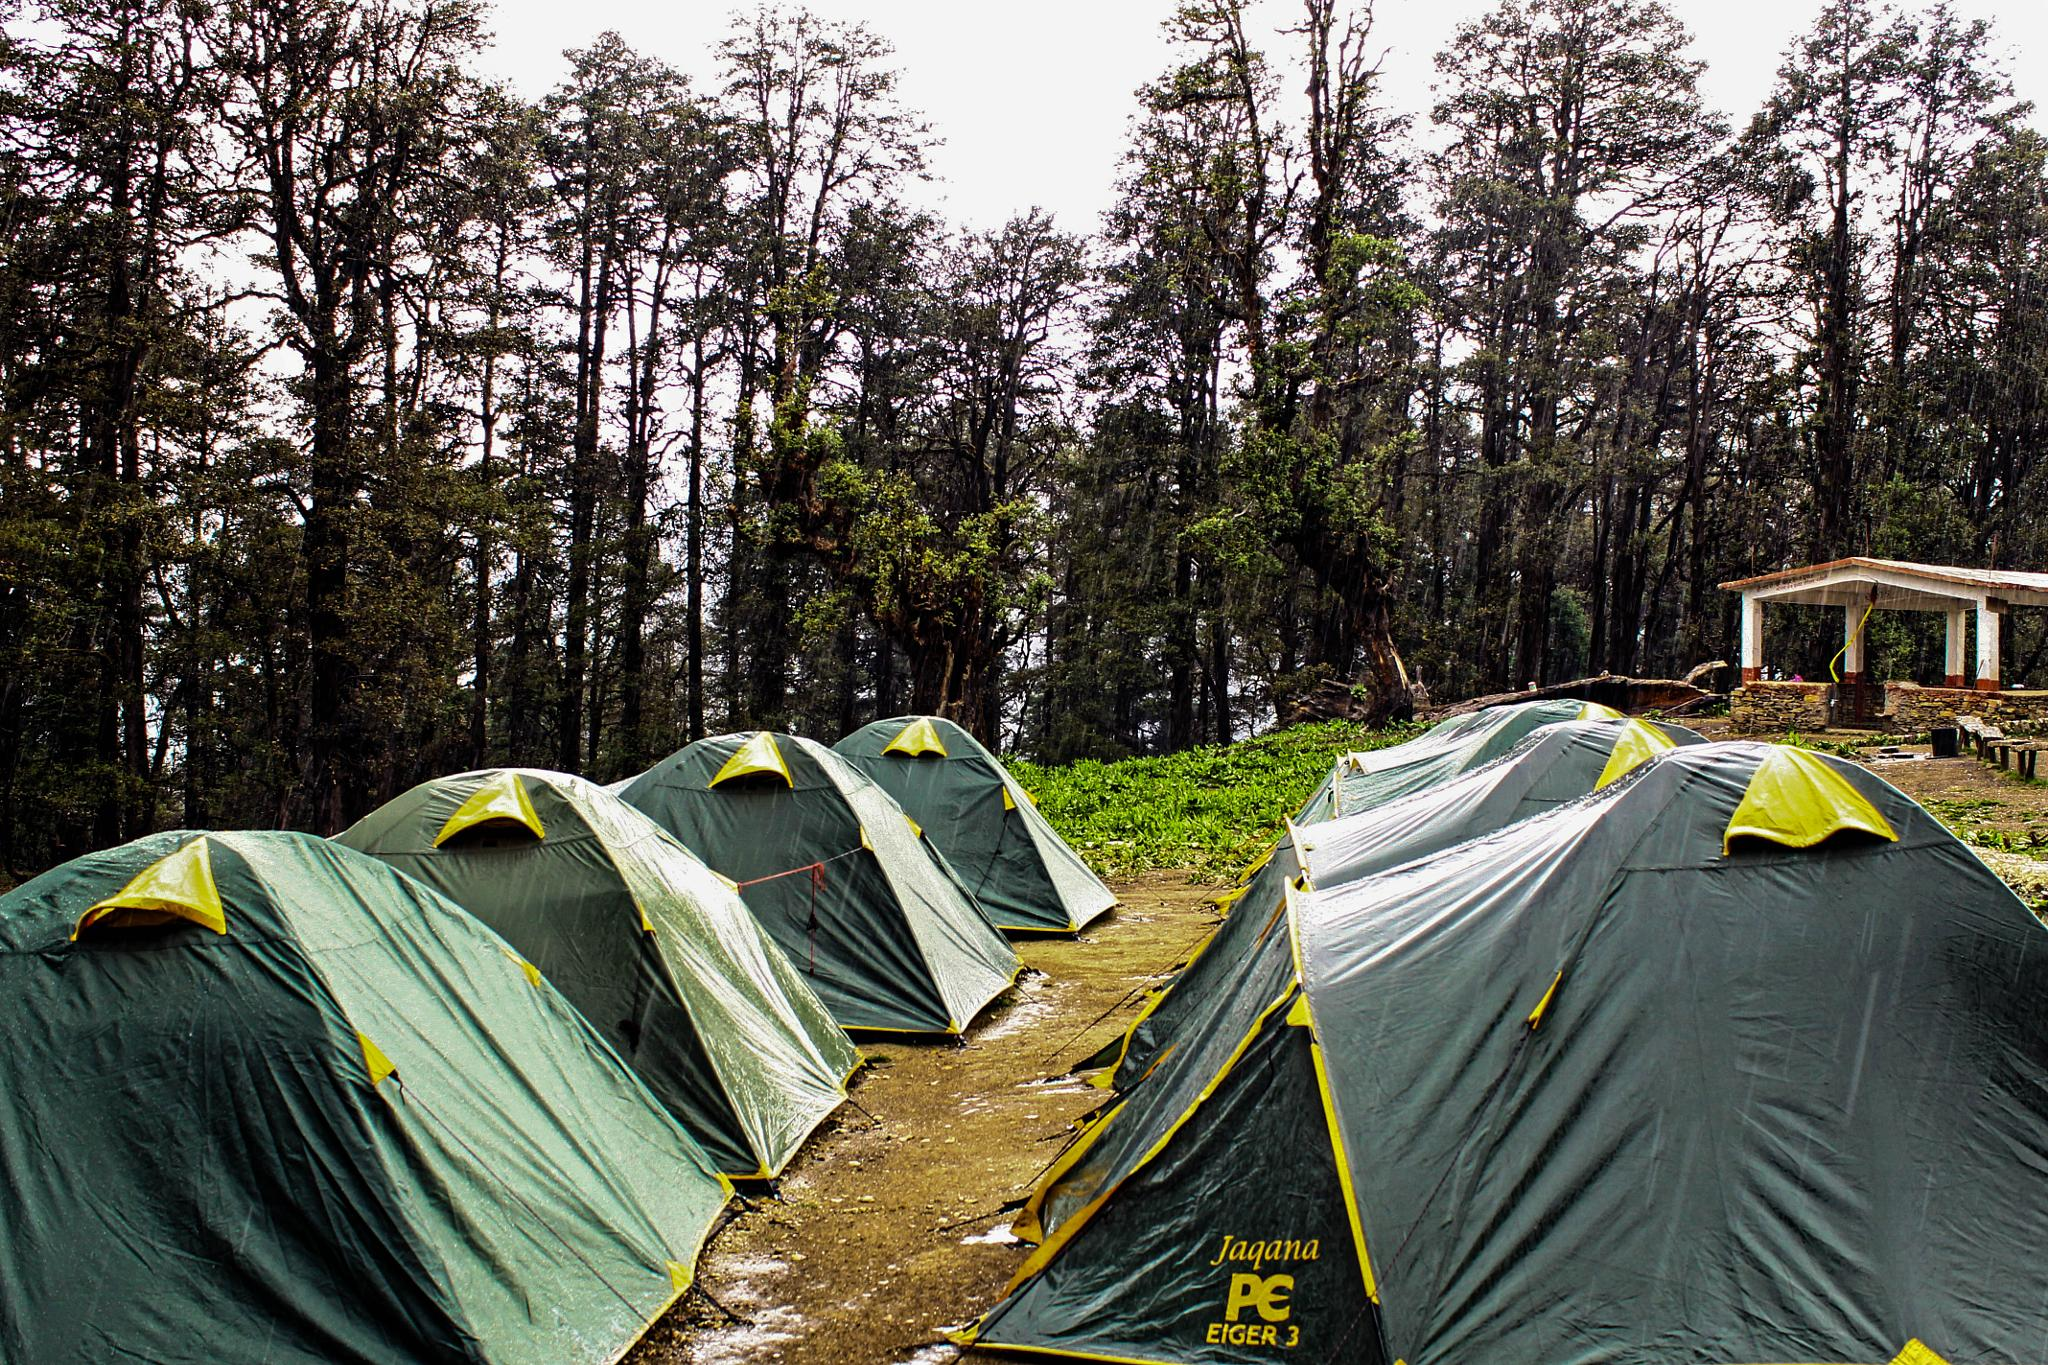 Rain at camp by ananthatejas